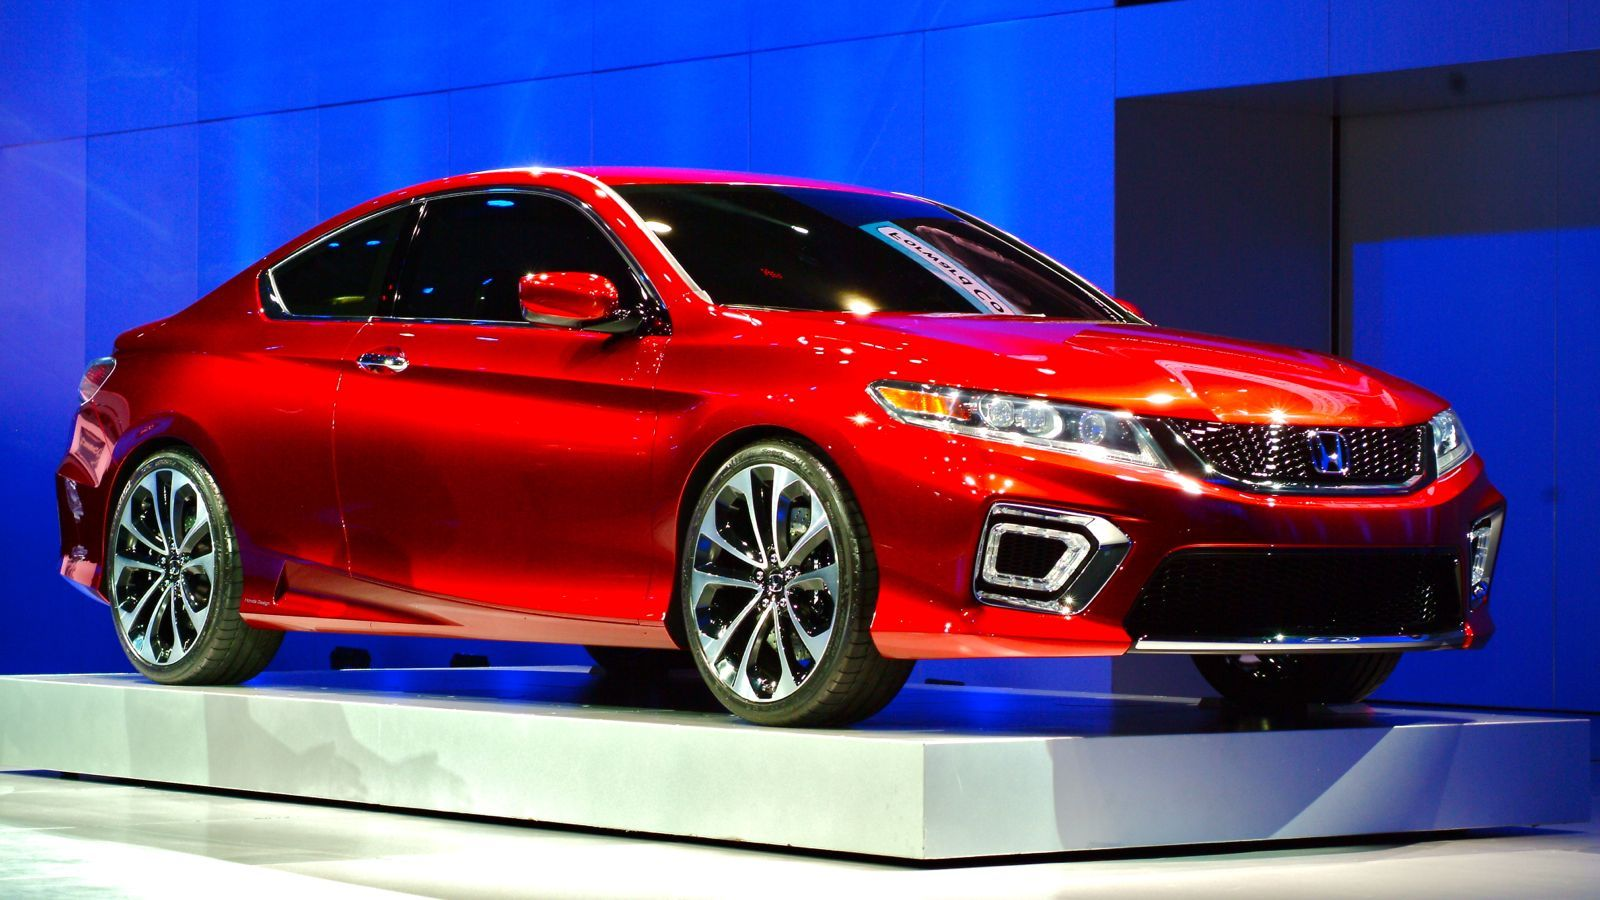 accord image gallery download best honda and share x coupe